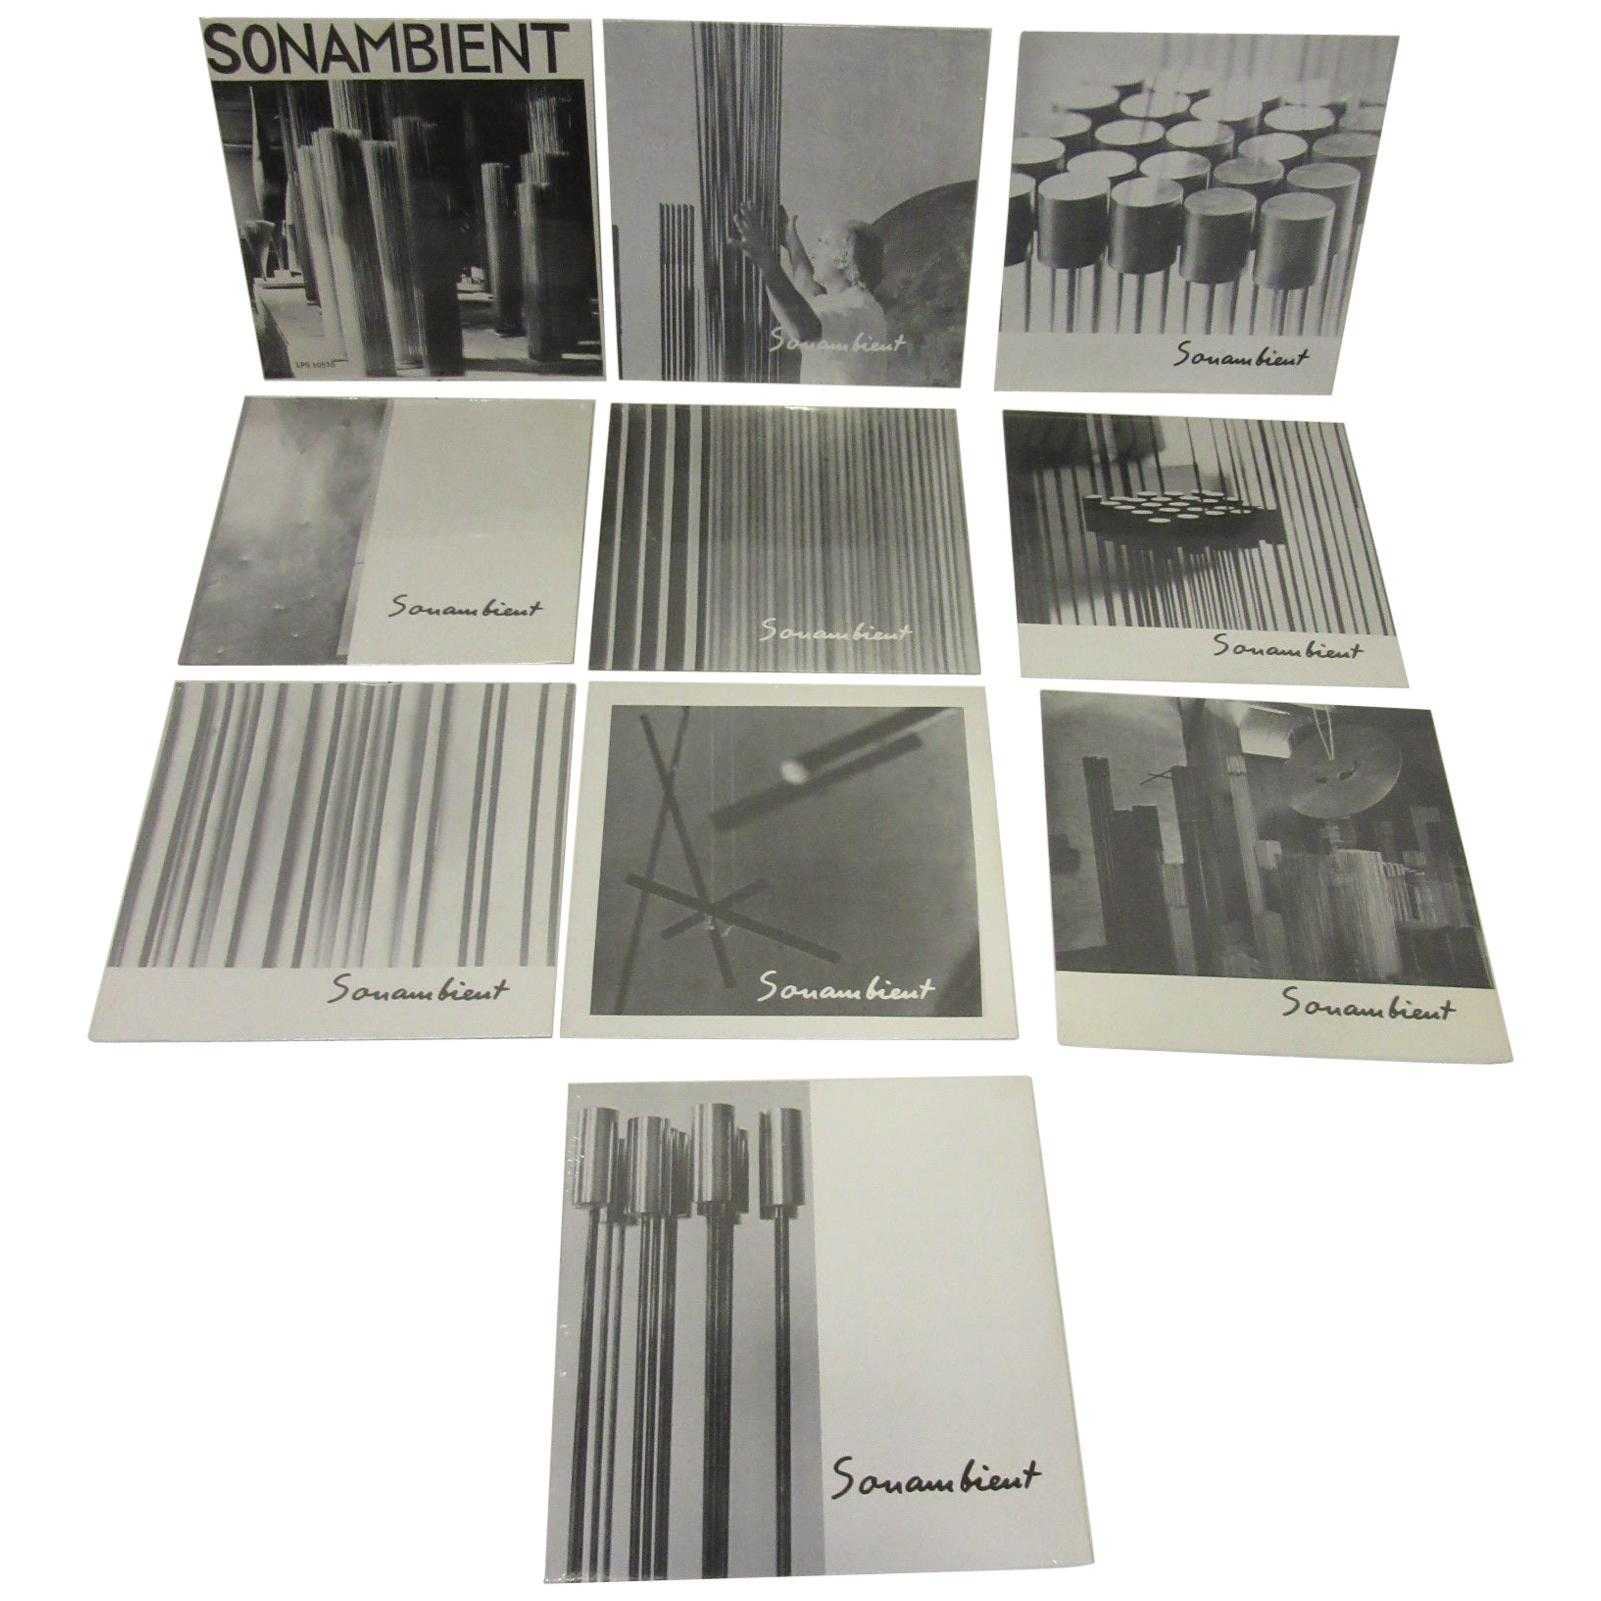 Harry Bertoia Sonambient Sculpture Sound Record Collection